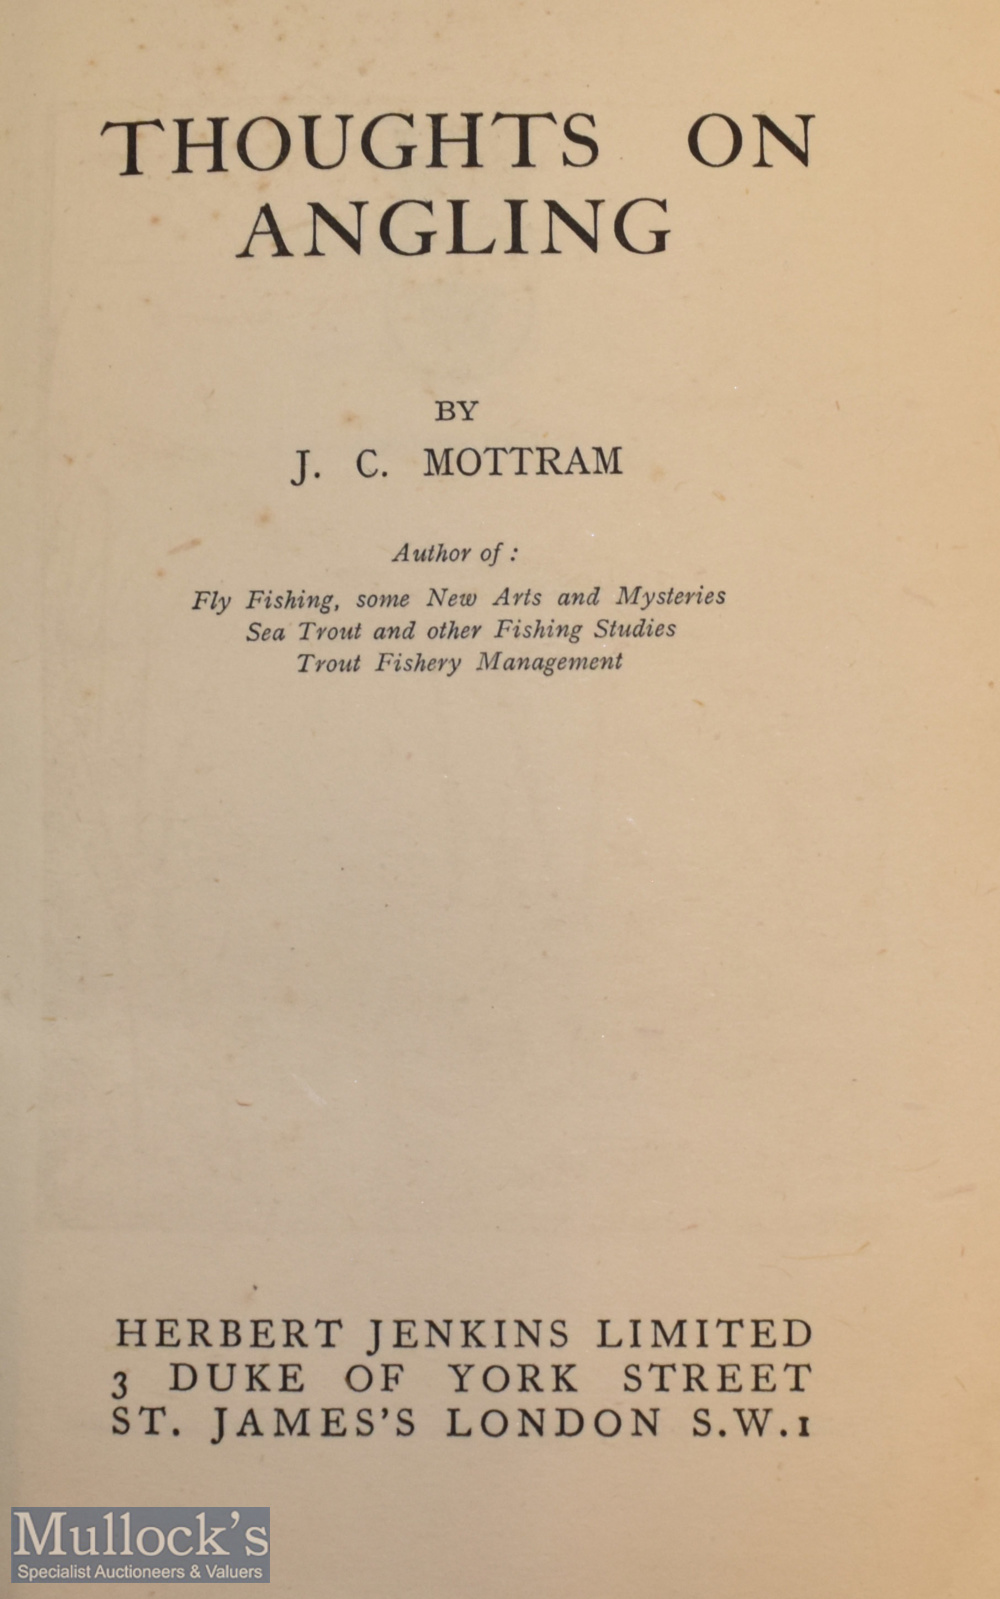 """Mottram, J. C. – """"Thoughts on Angling"""" 1st edition, published by Herbert Jenkins, London, - Image 2 of 2"""